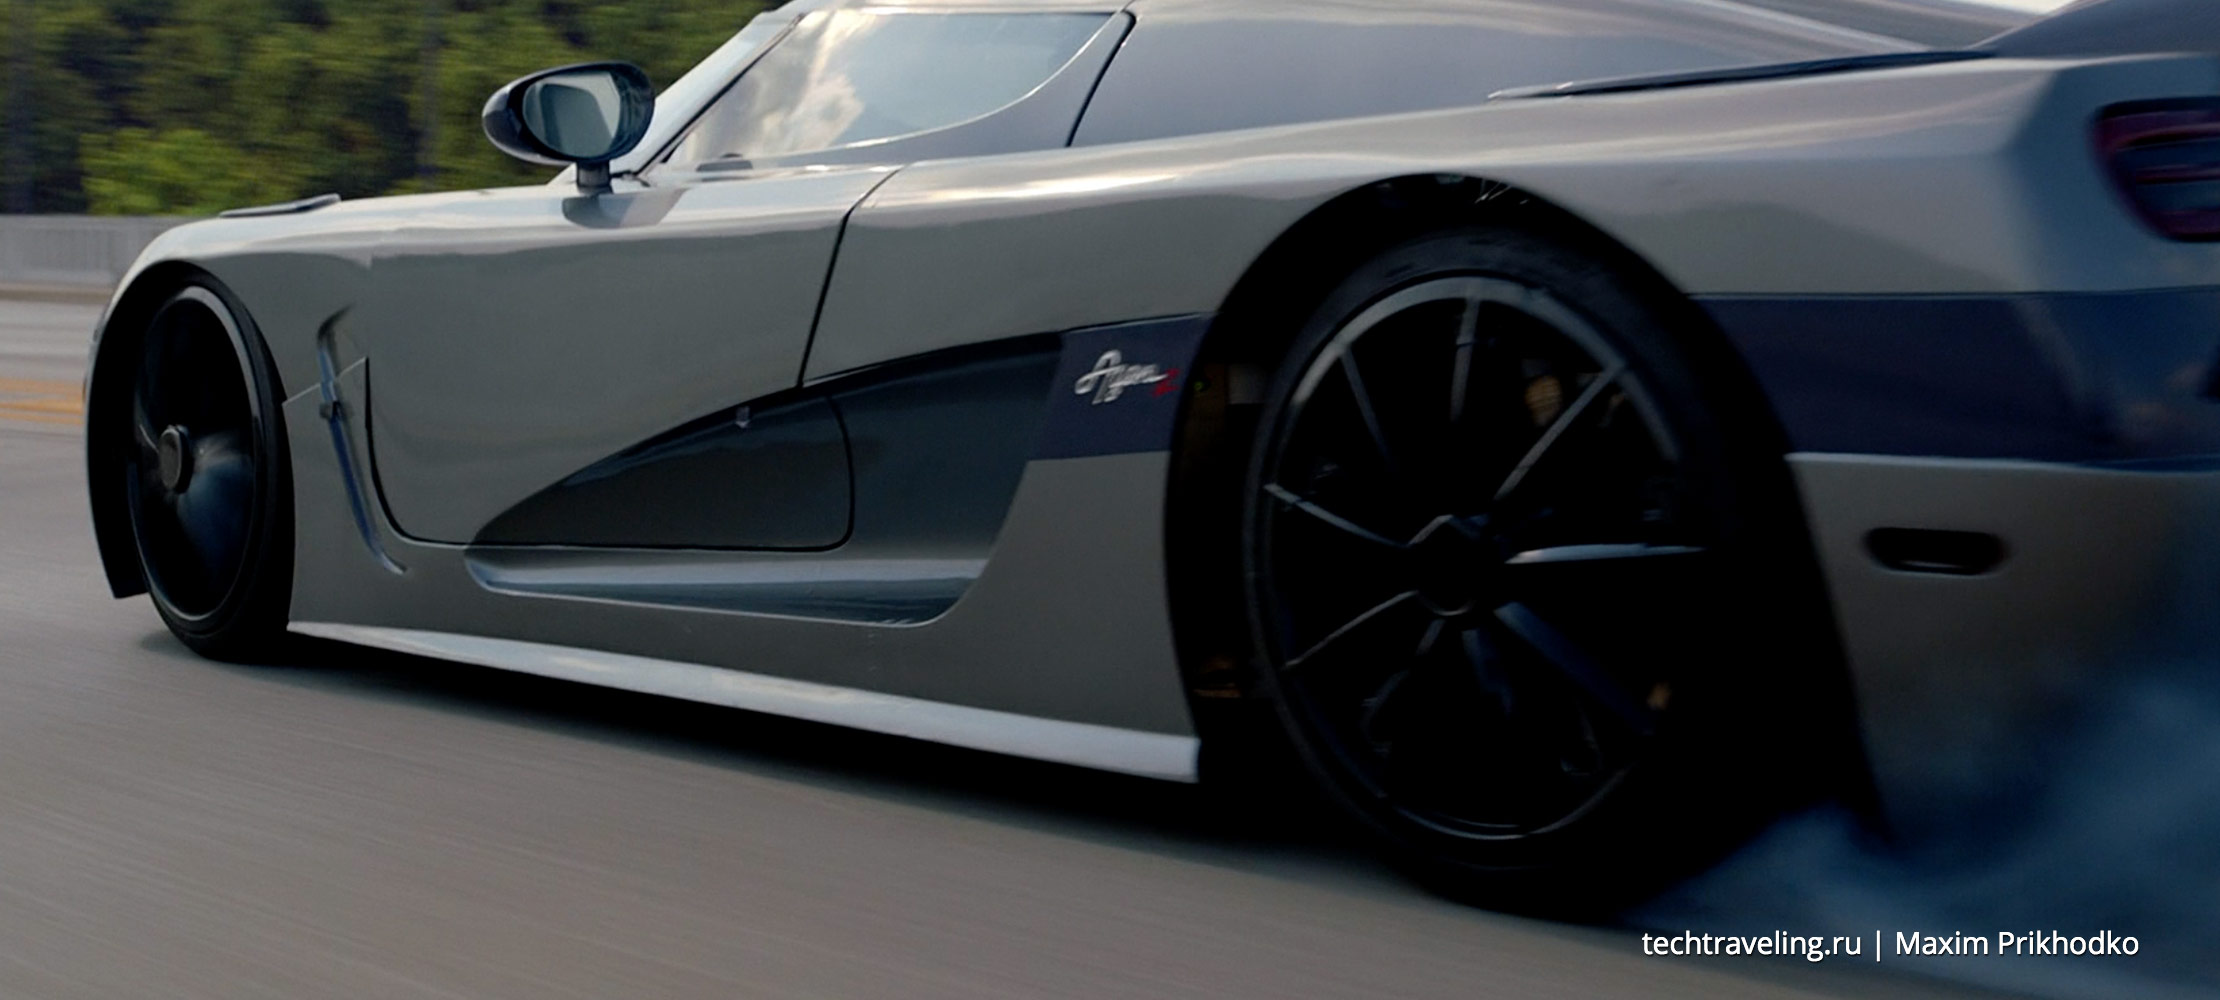 Koenigsegg Agera Need For Speed